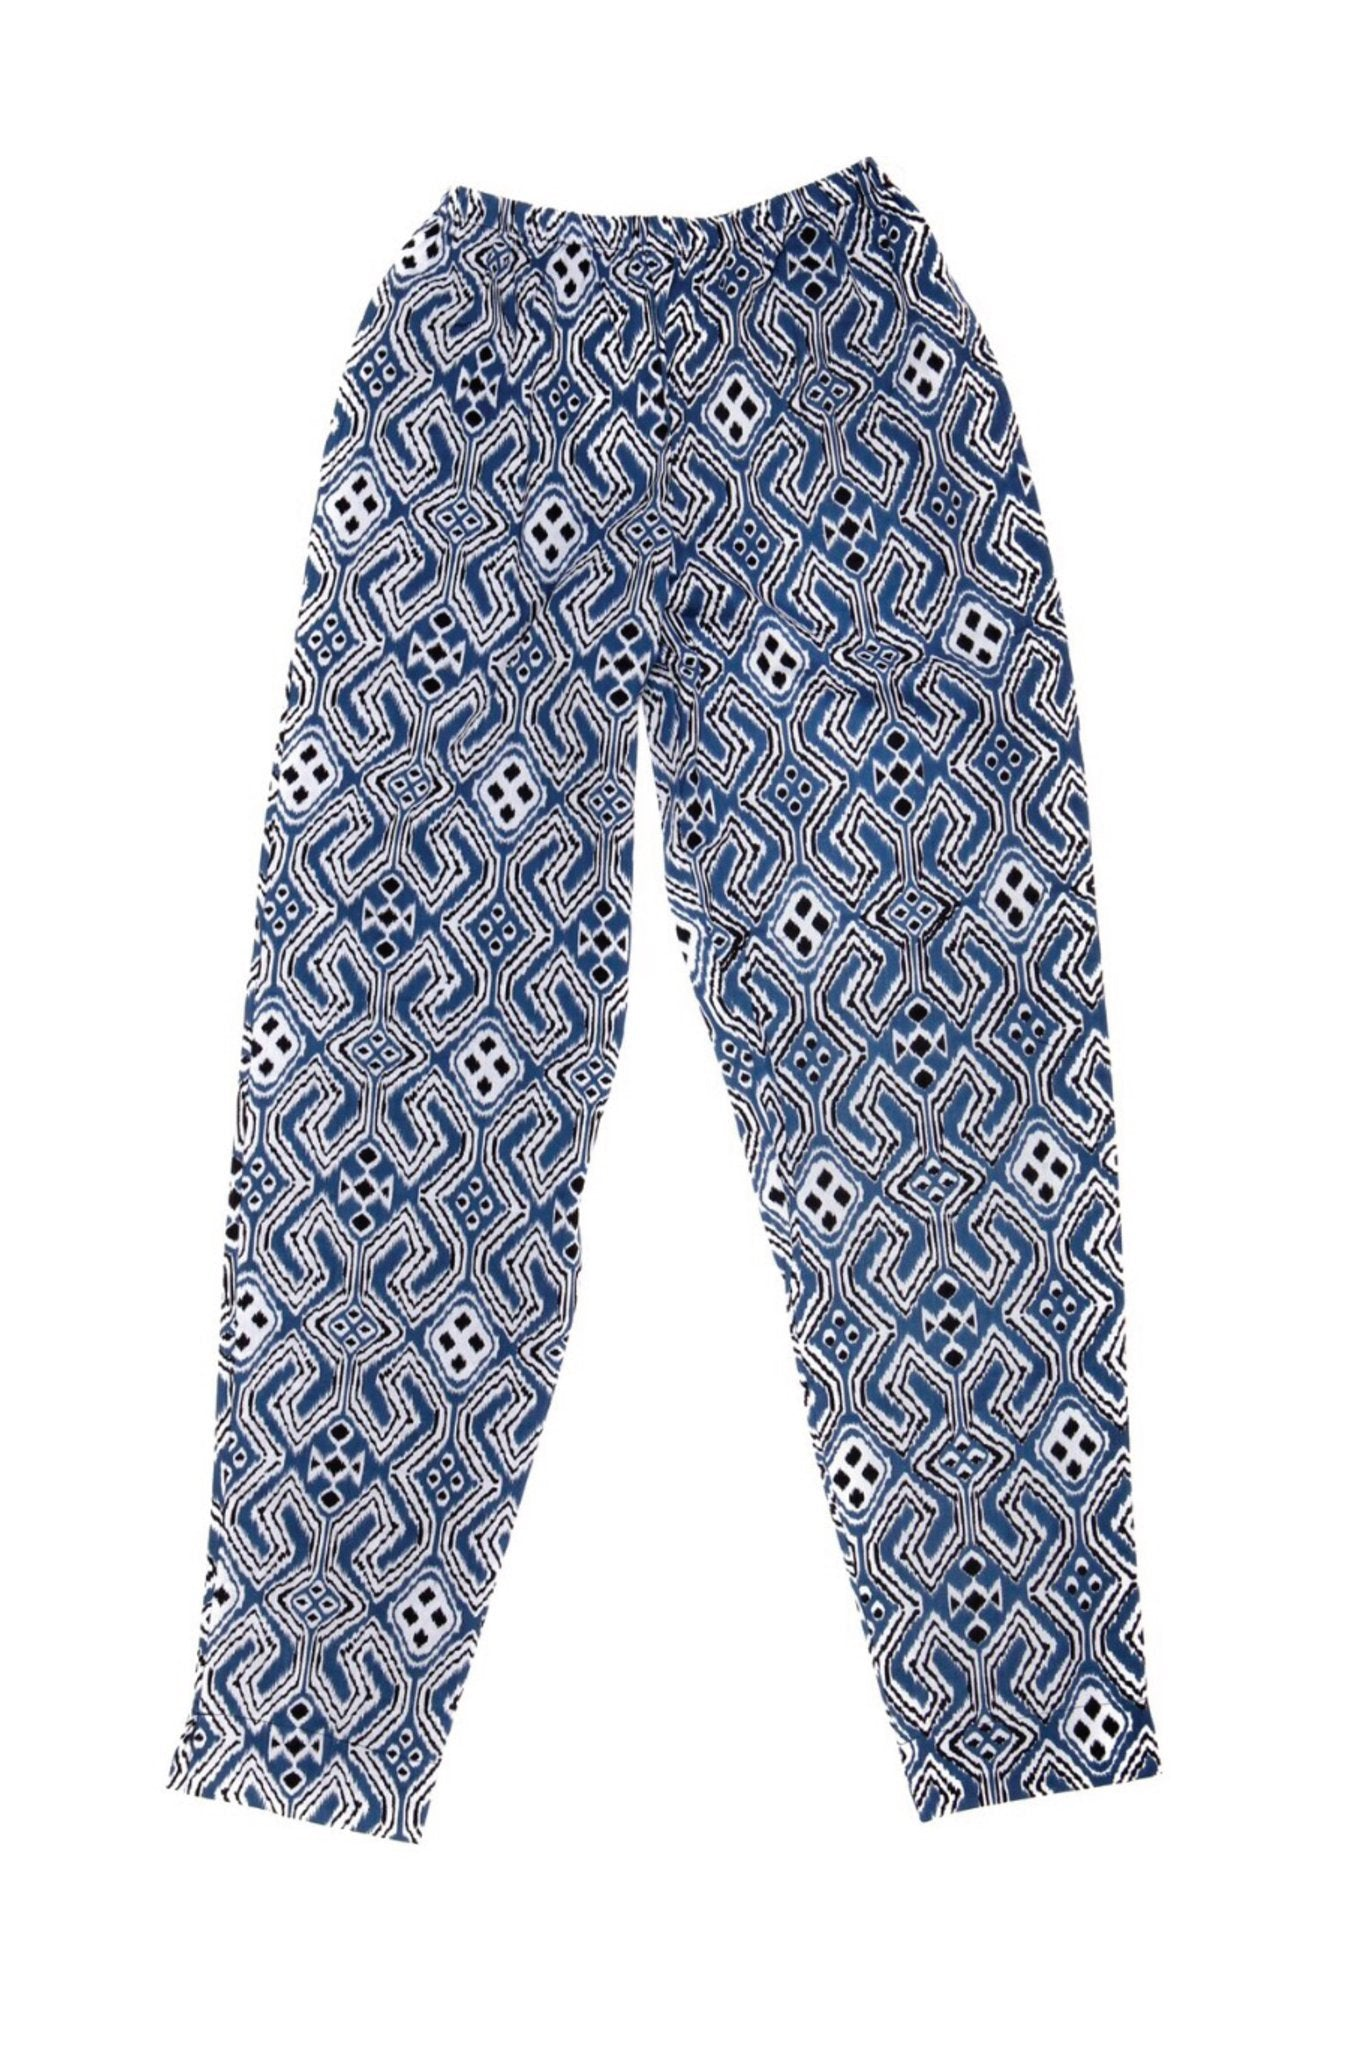 BATIK Trousers Navy - Komodo Fashion